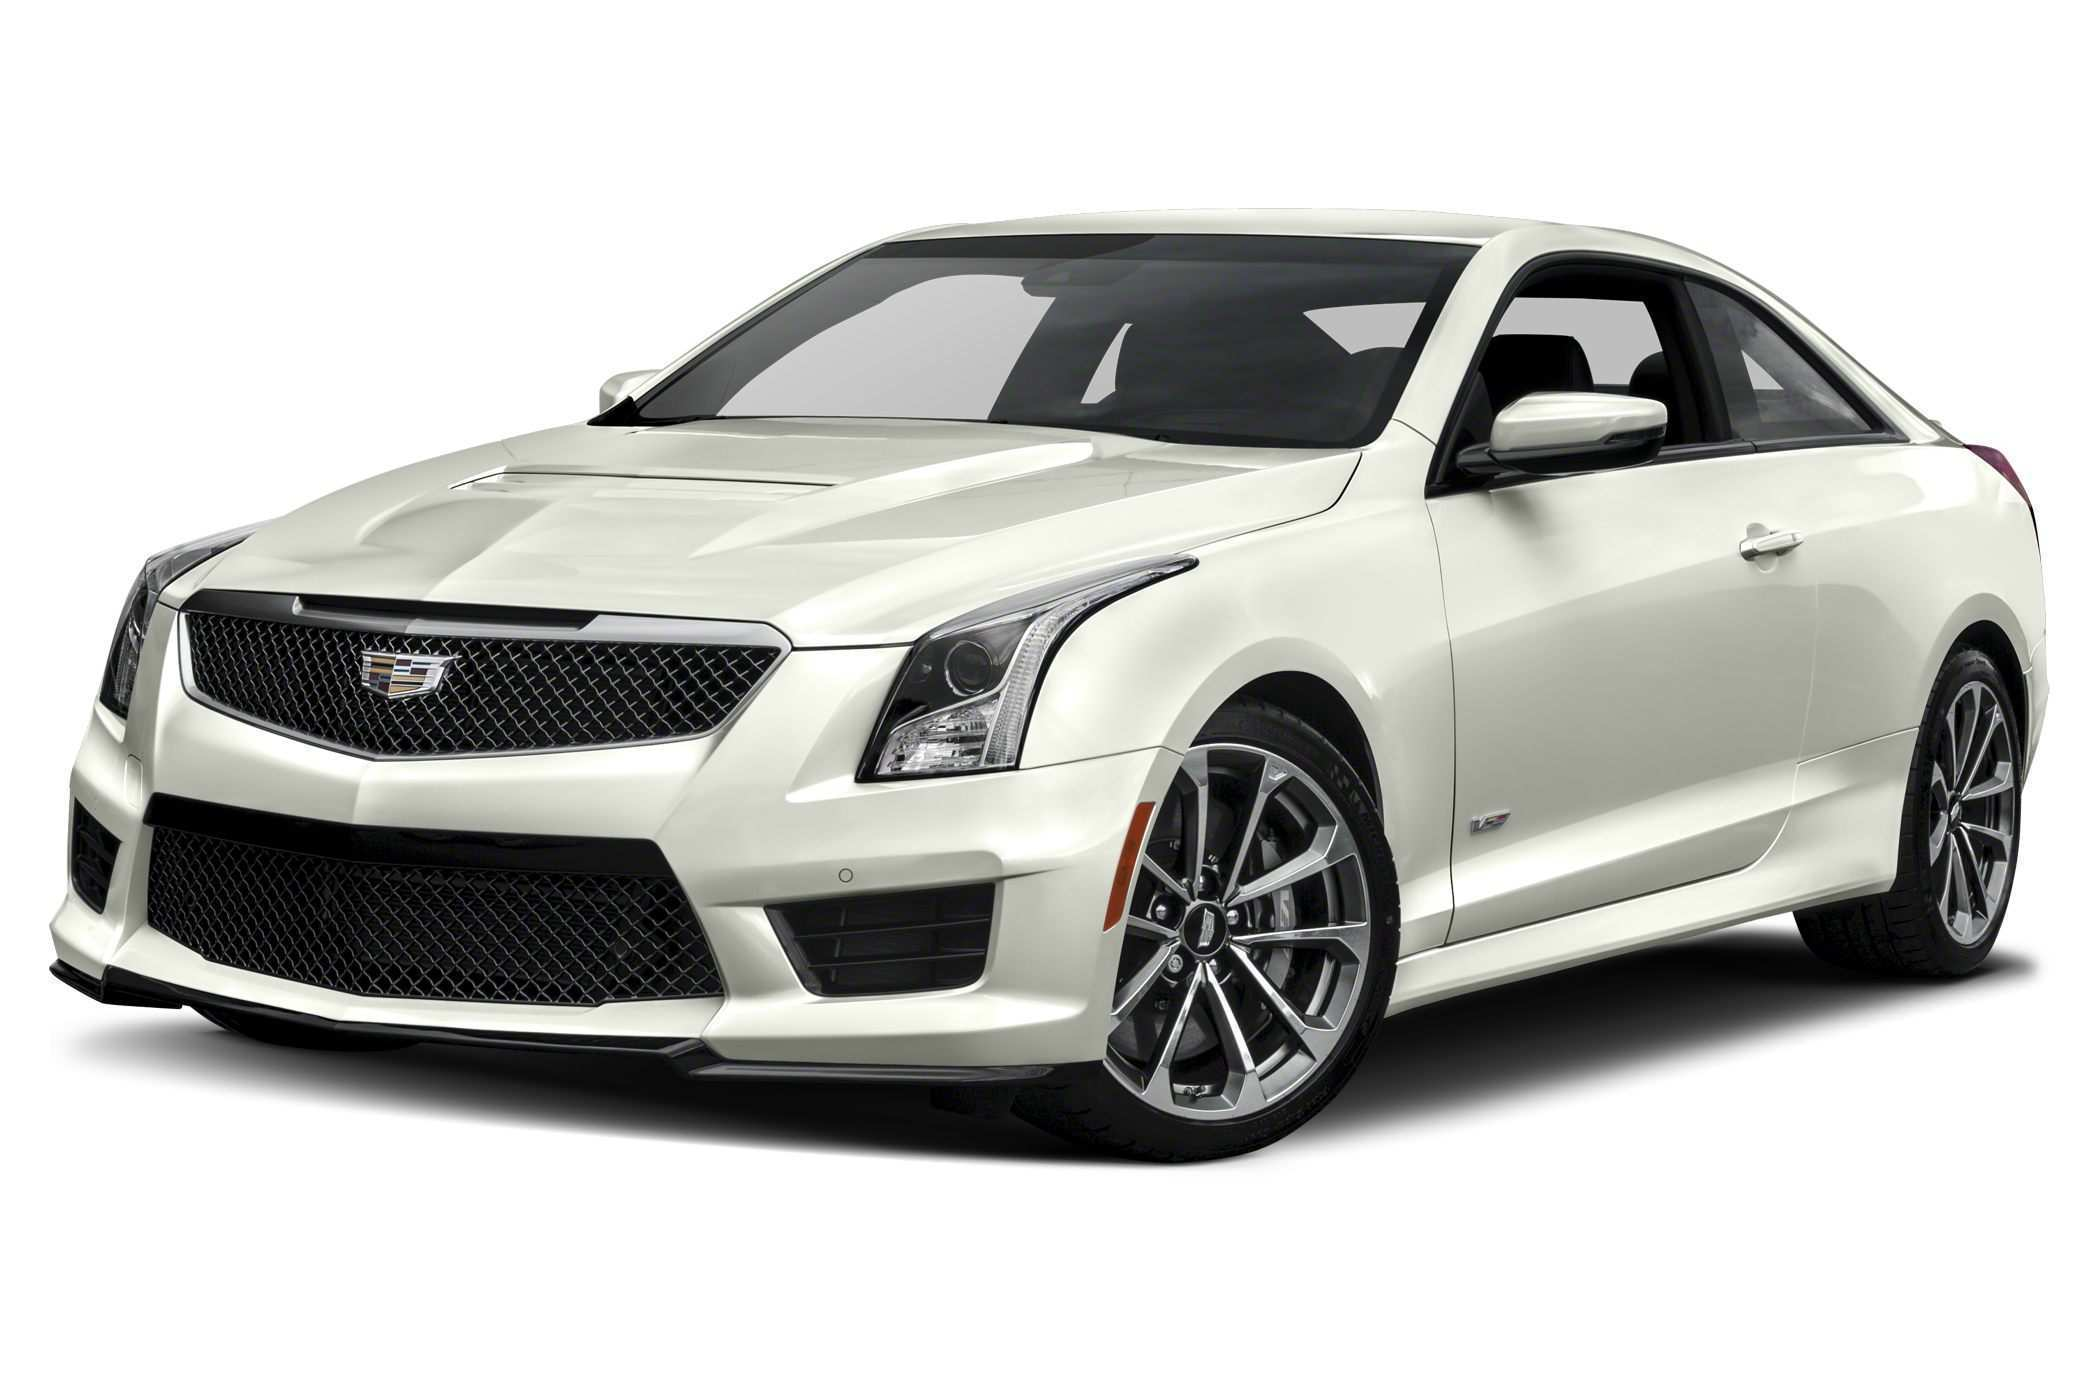 41 The Best 2019 Cadillac Deville Coupe Images